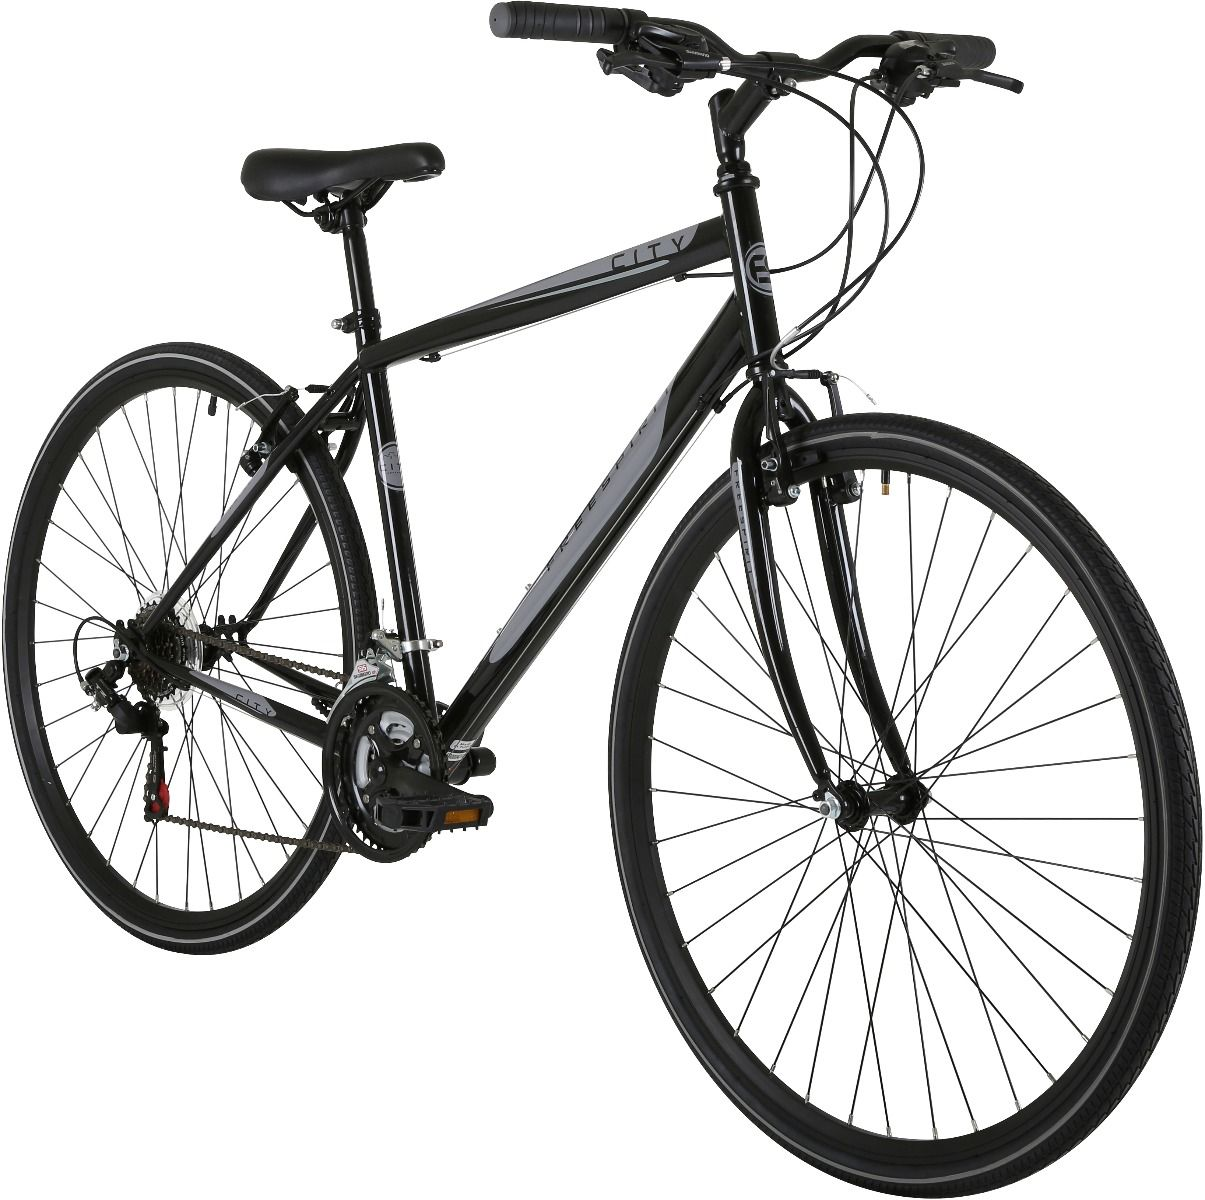 Freespirit City Commute Bike